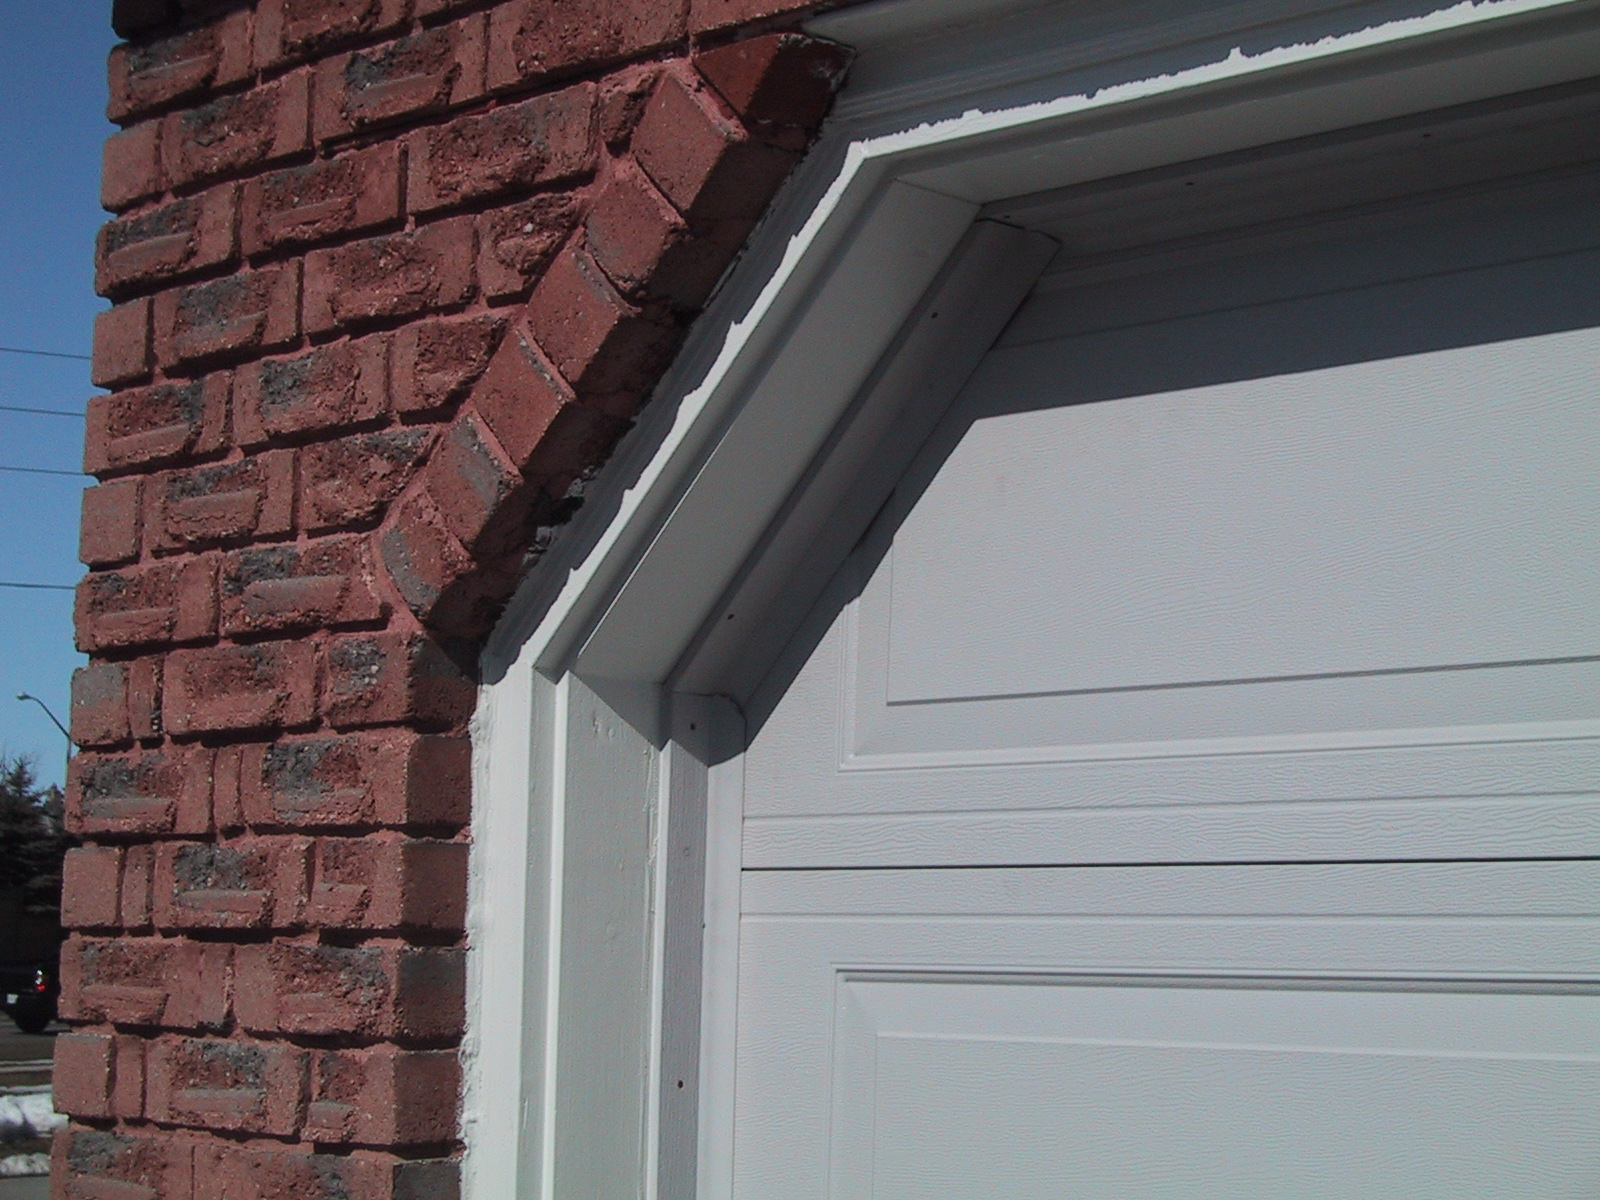 Doors To Garage: How To Insulate The Gaps Between The Garage Door And Side